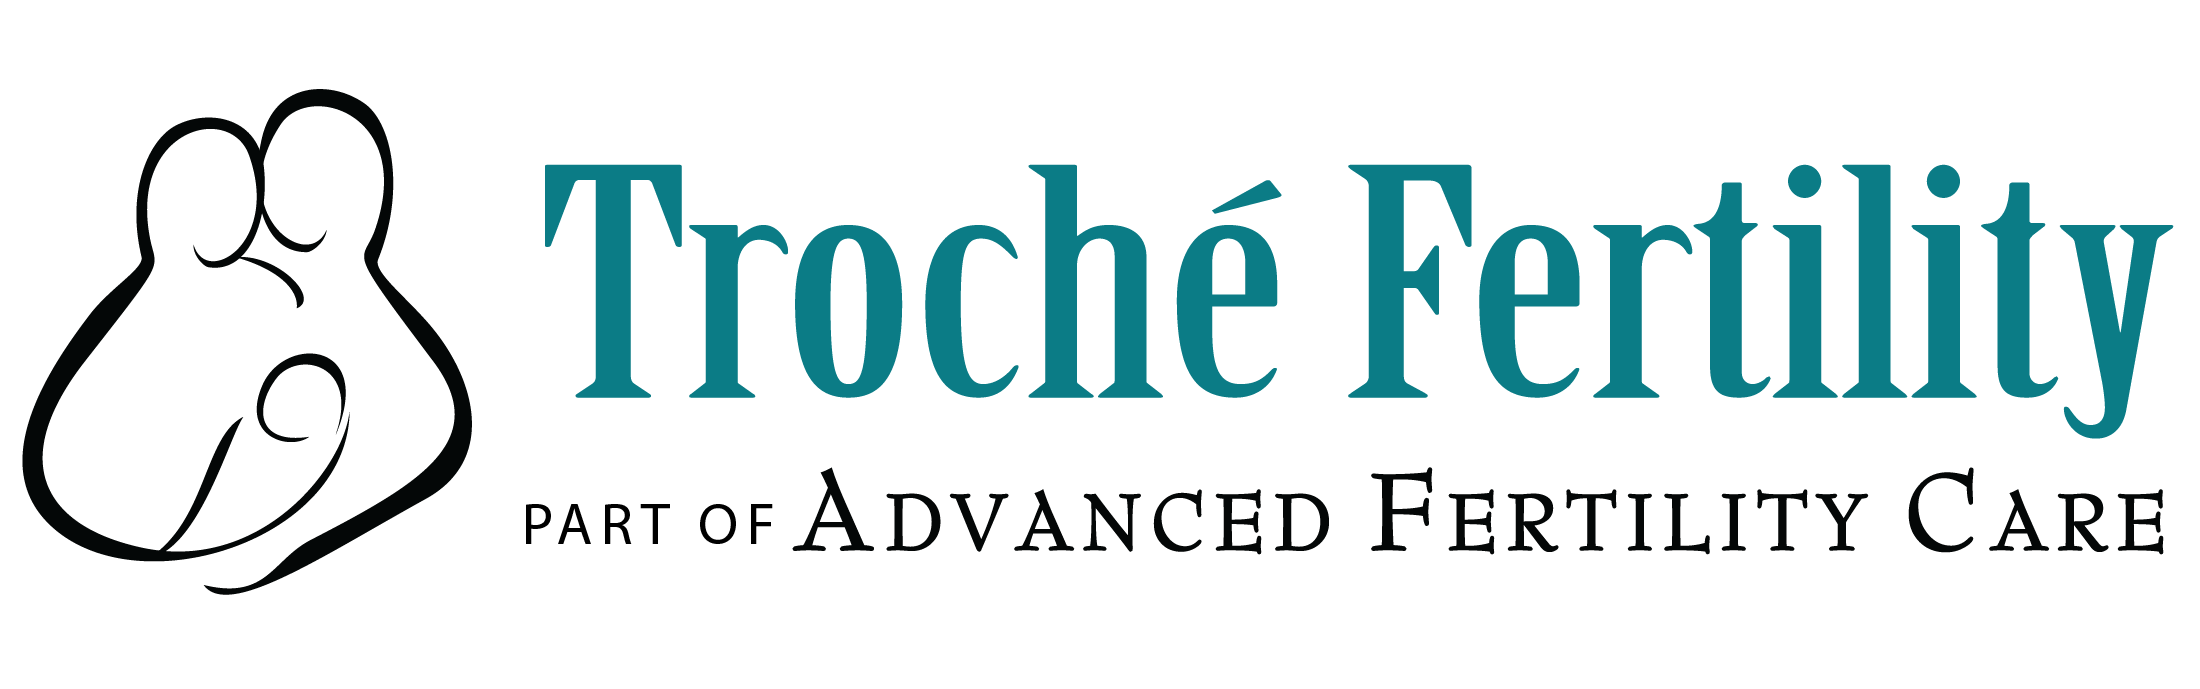 Troche Fertility part of Advanced Fertility Care